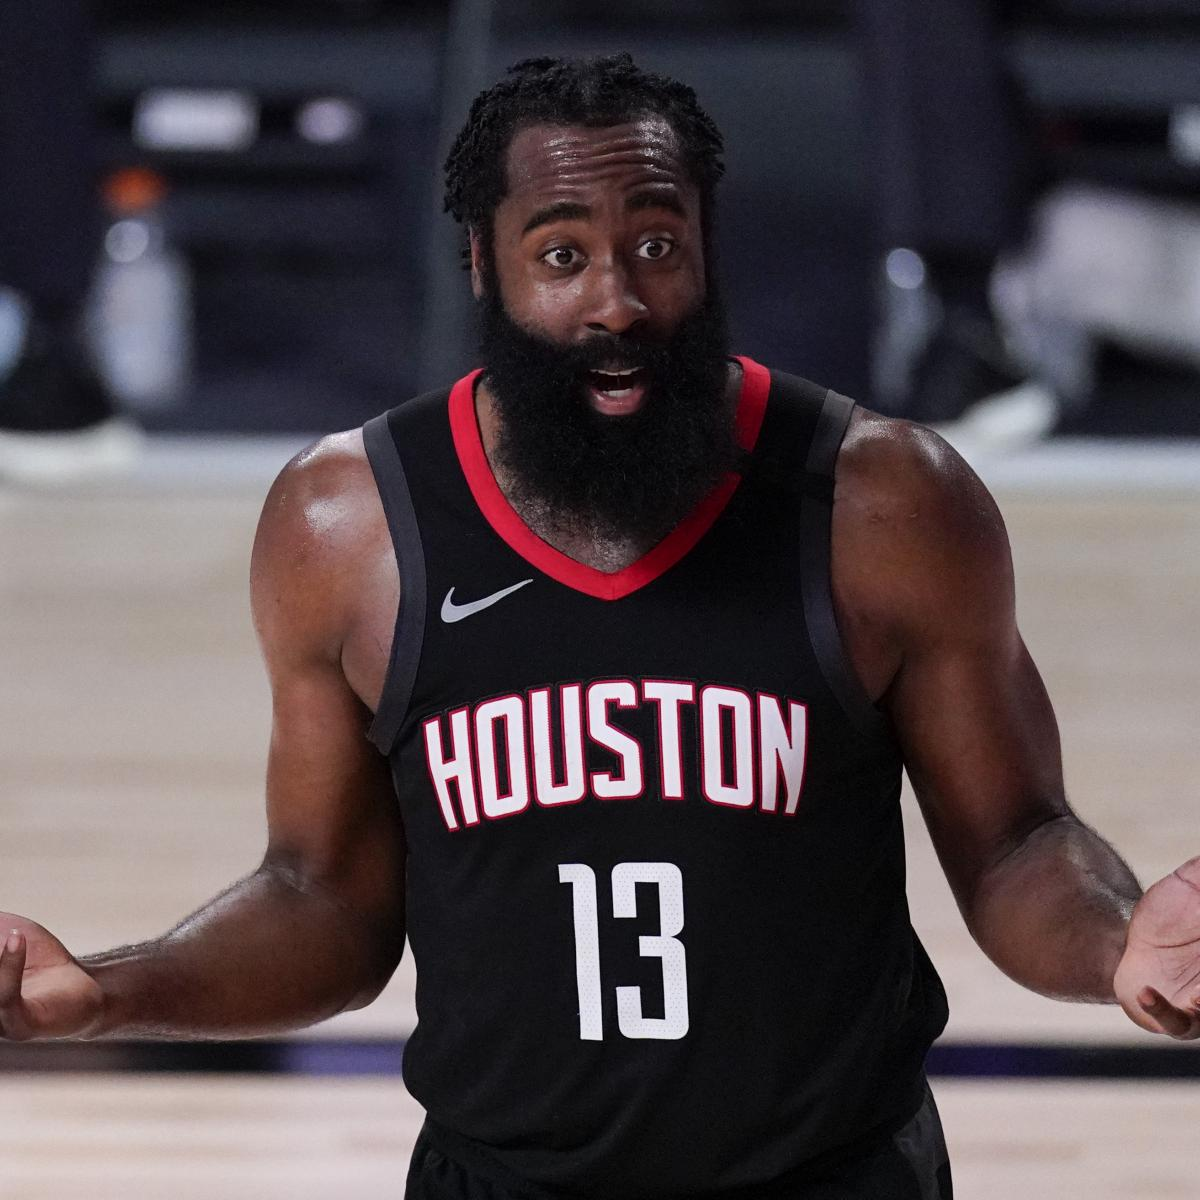 James Harden Rumors: 76ers Believe Mike D'Antoni Could Help Lure Star to Philly